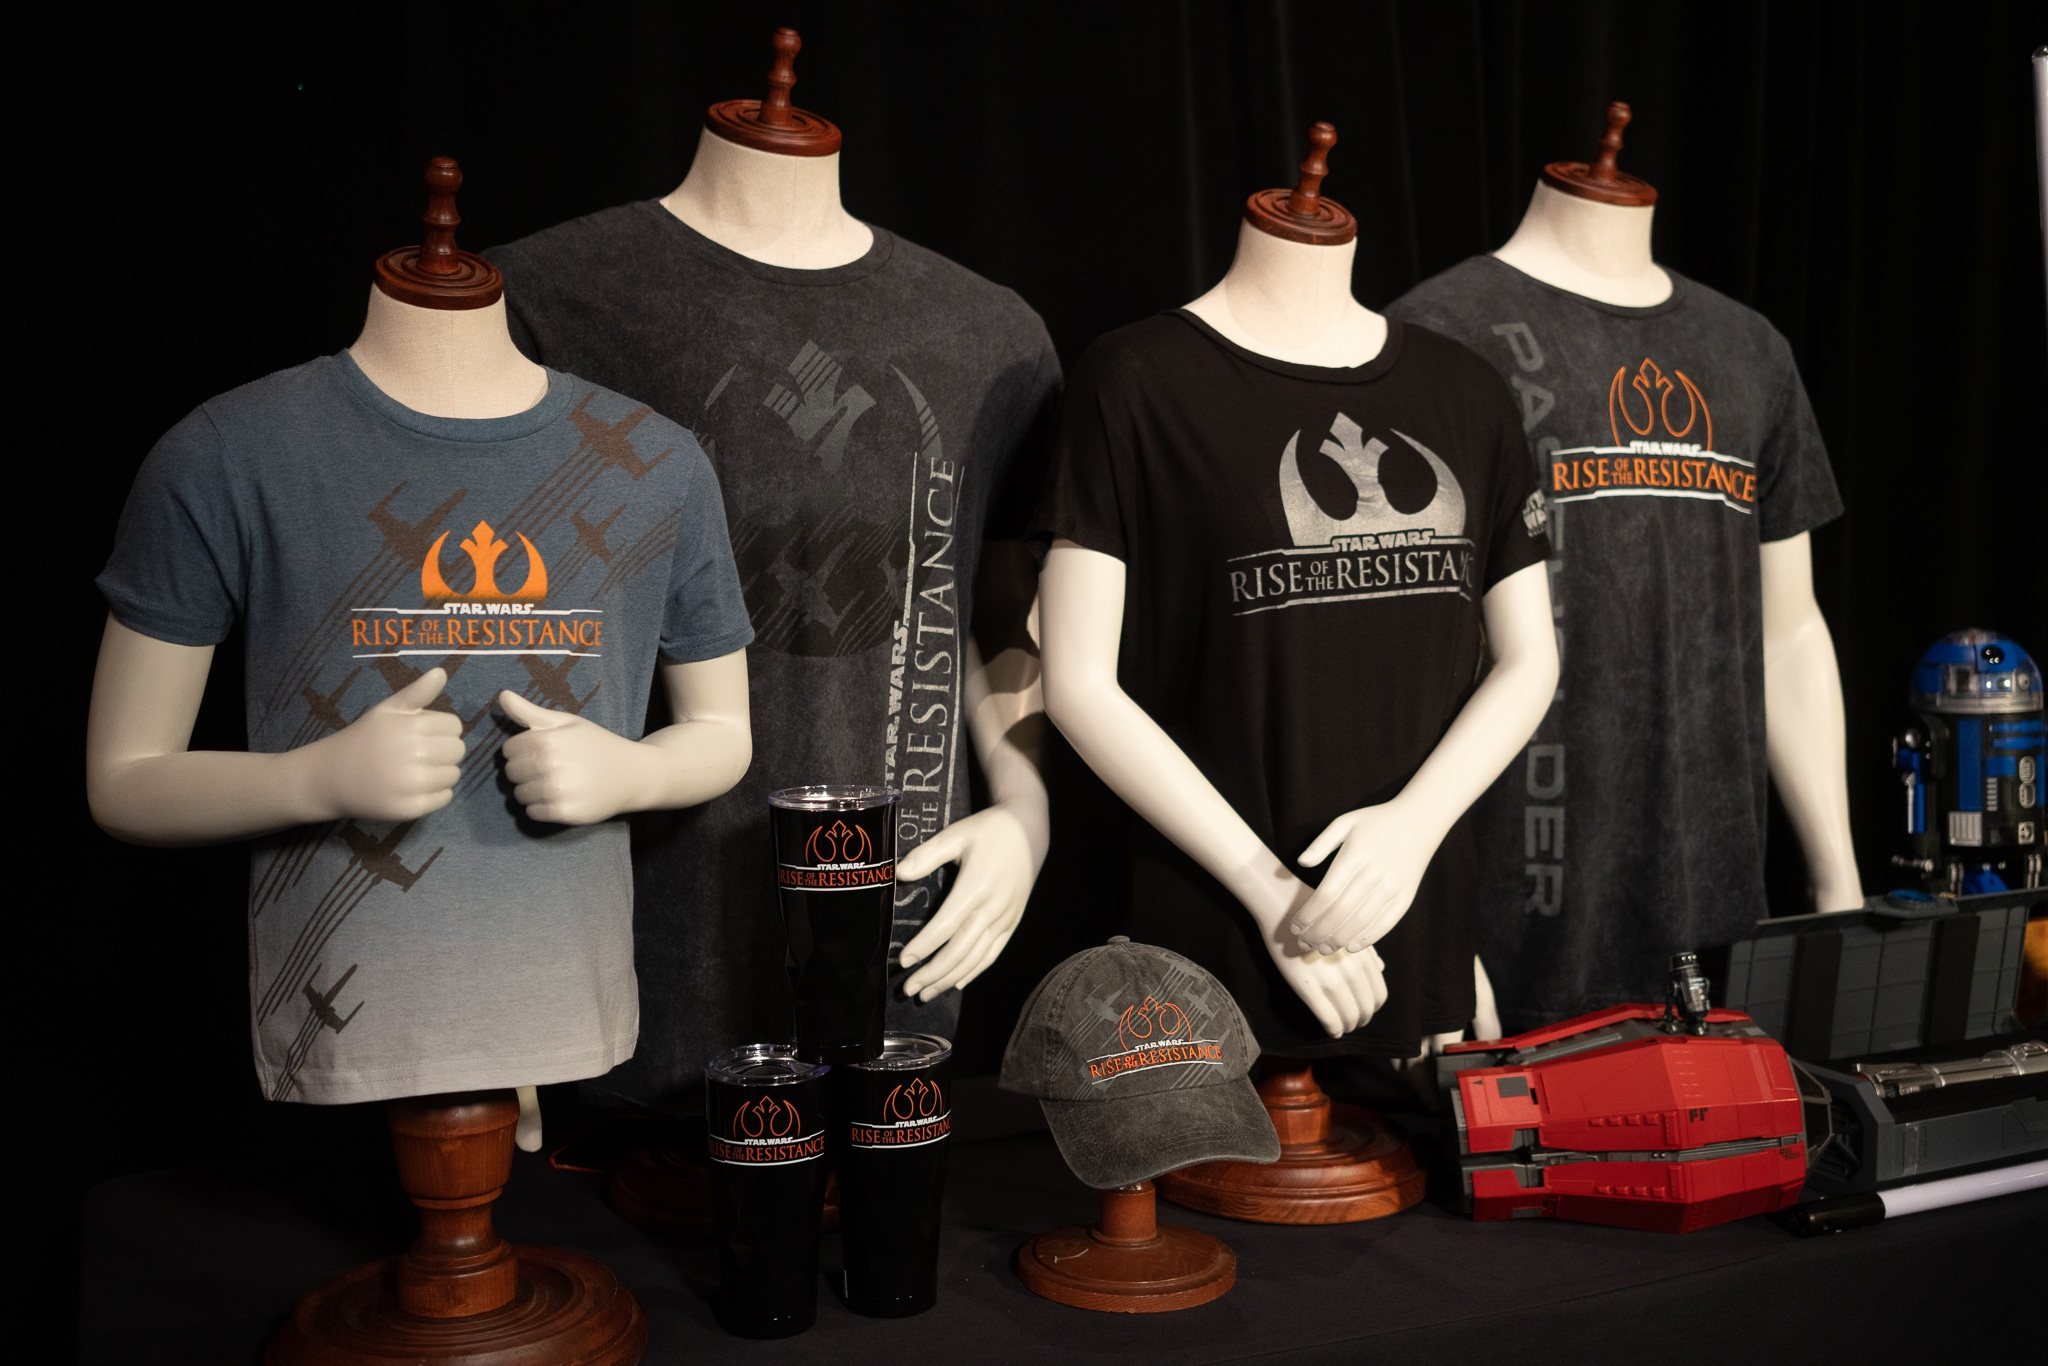 STAR WARS: Rise of the Resistance new merchandise